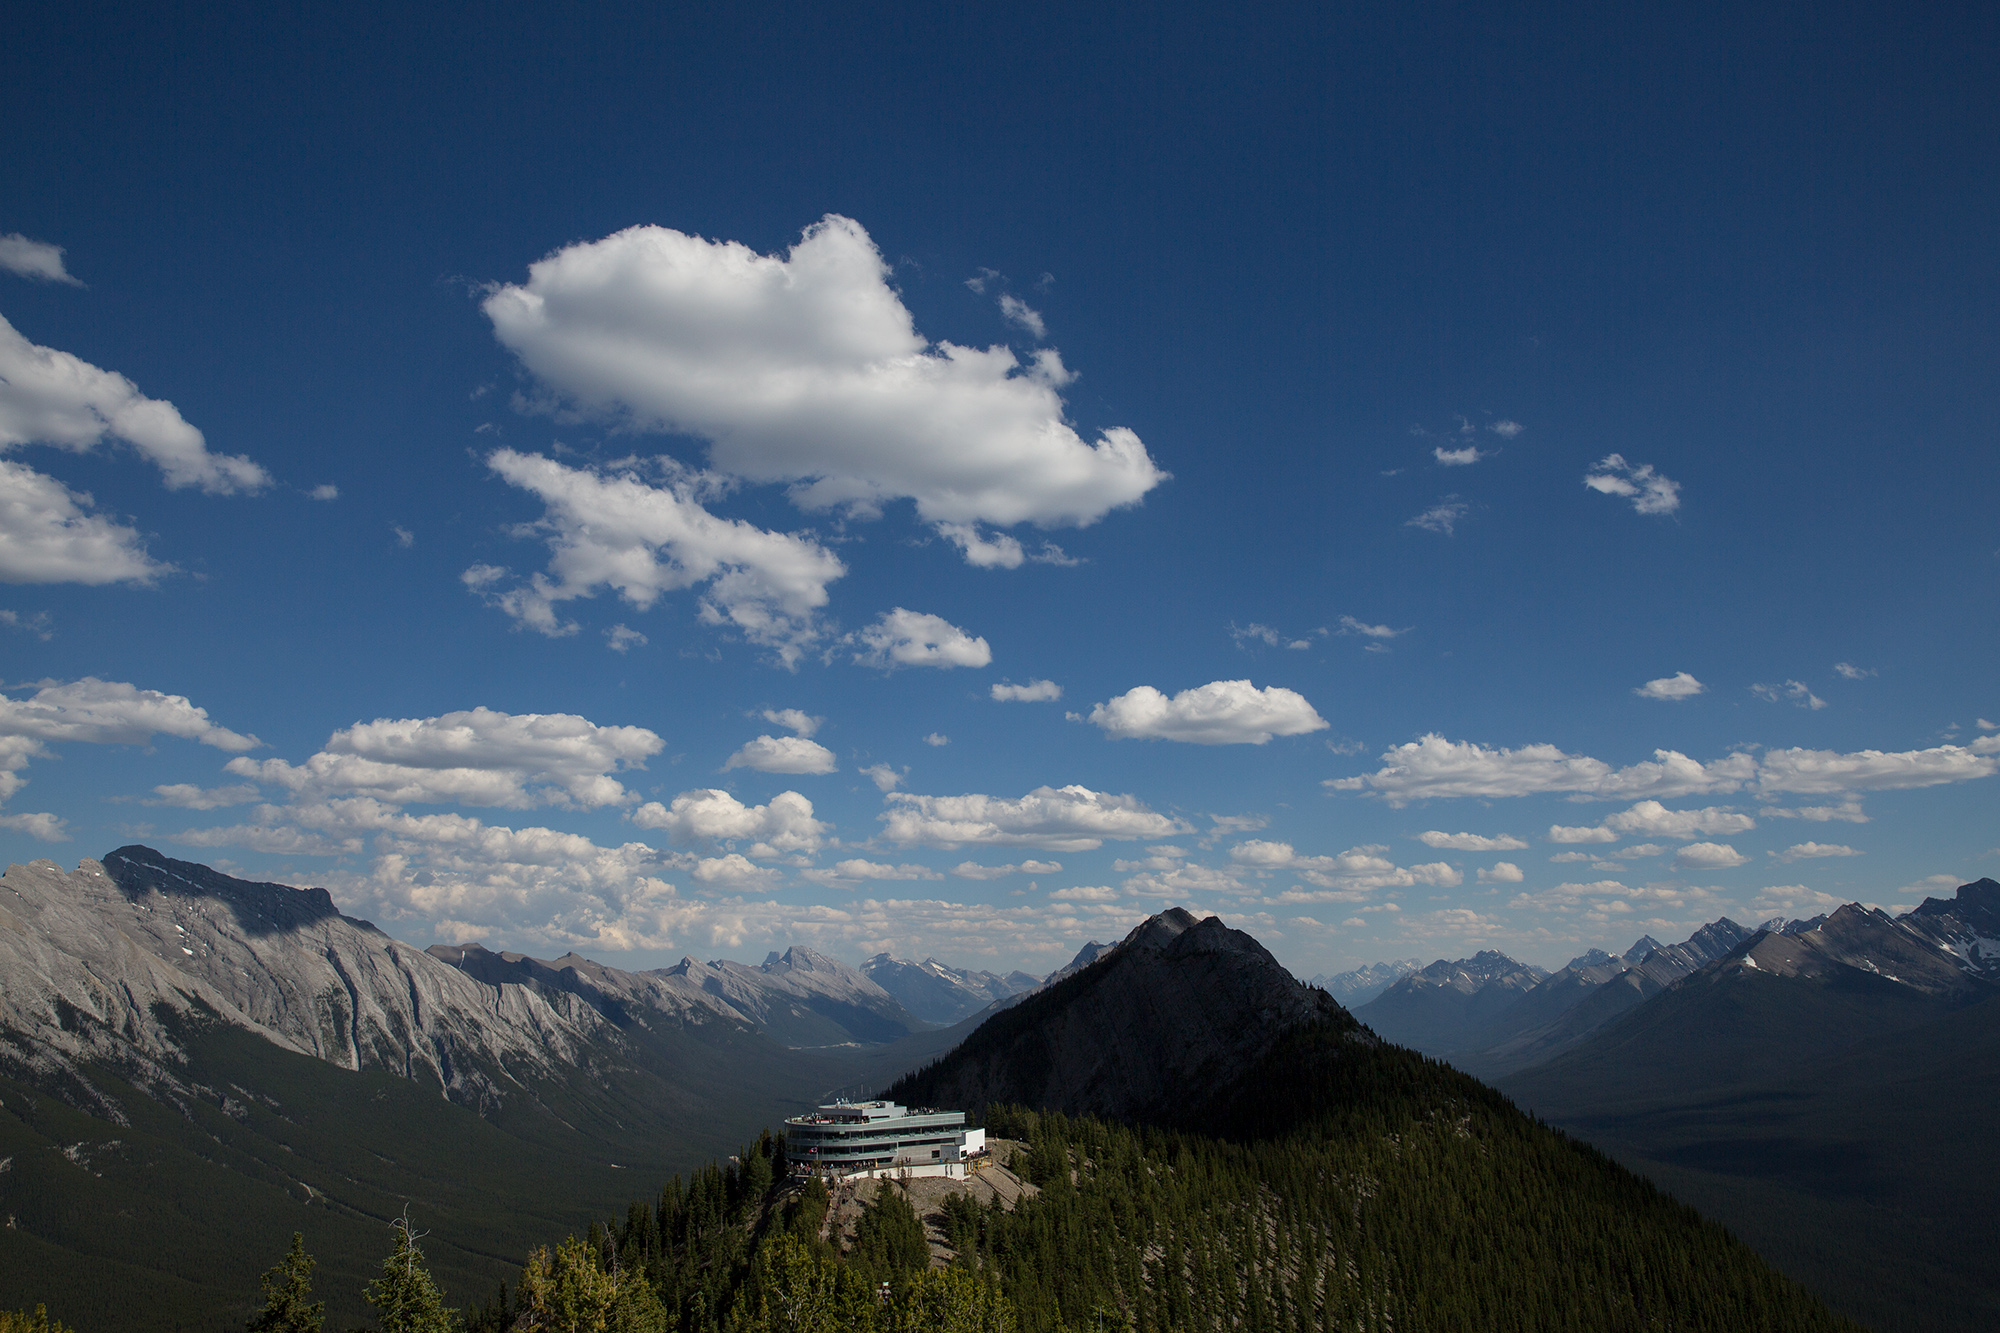 The top of the Banff Gondola.